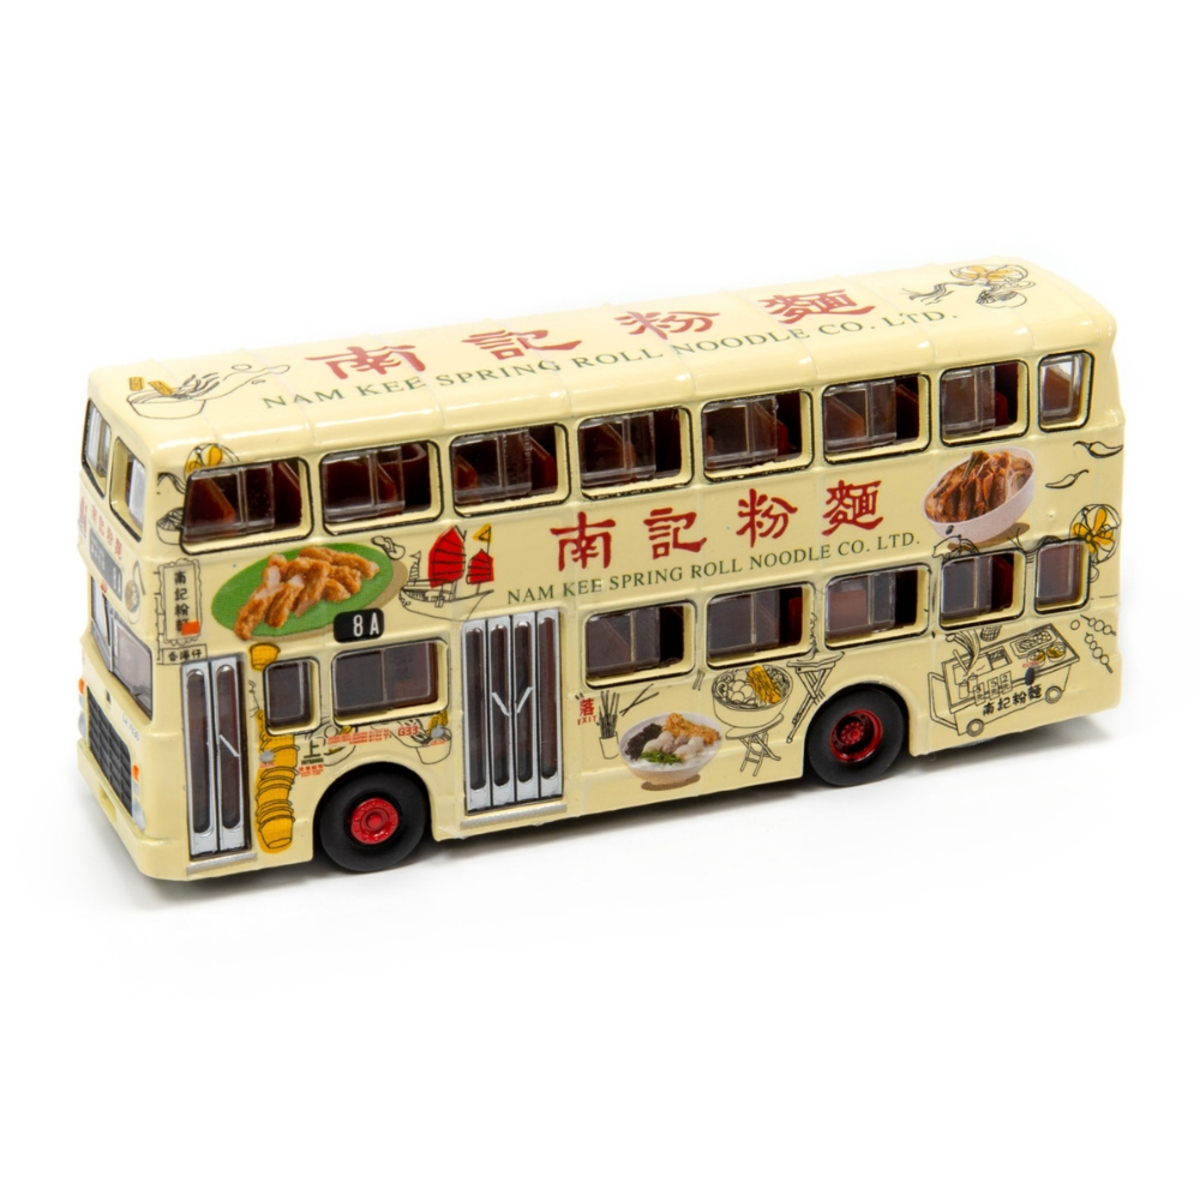 City 152 Die-cast Model Car Leyland Victory Mk2 Nam Kee (Kowloon) ATC64512